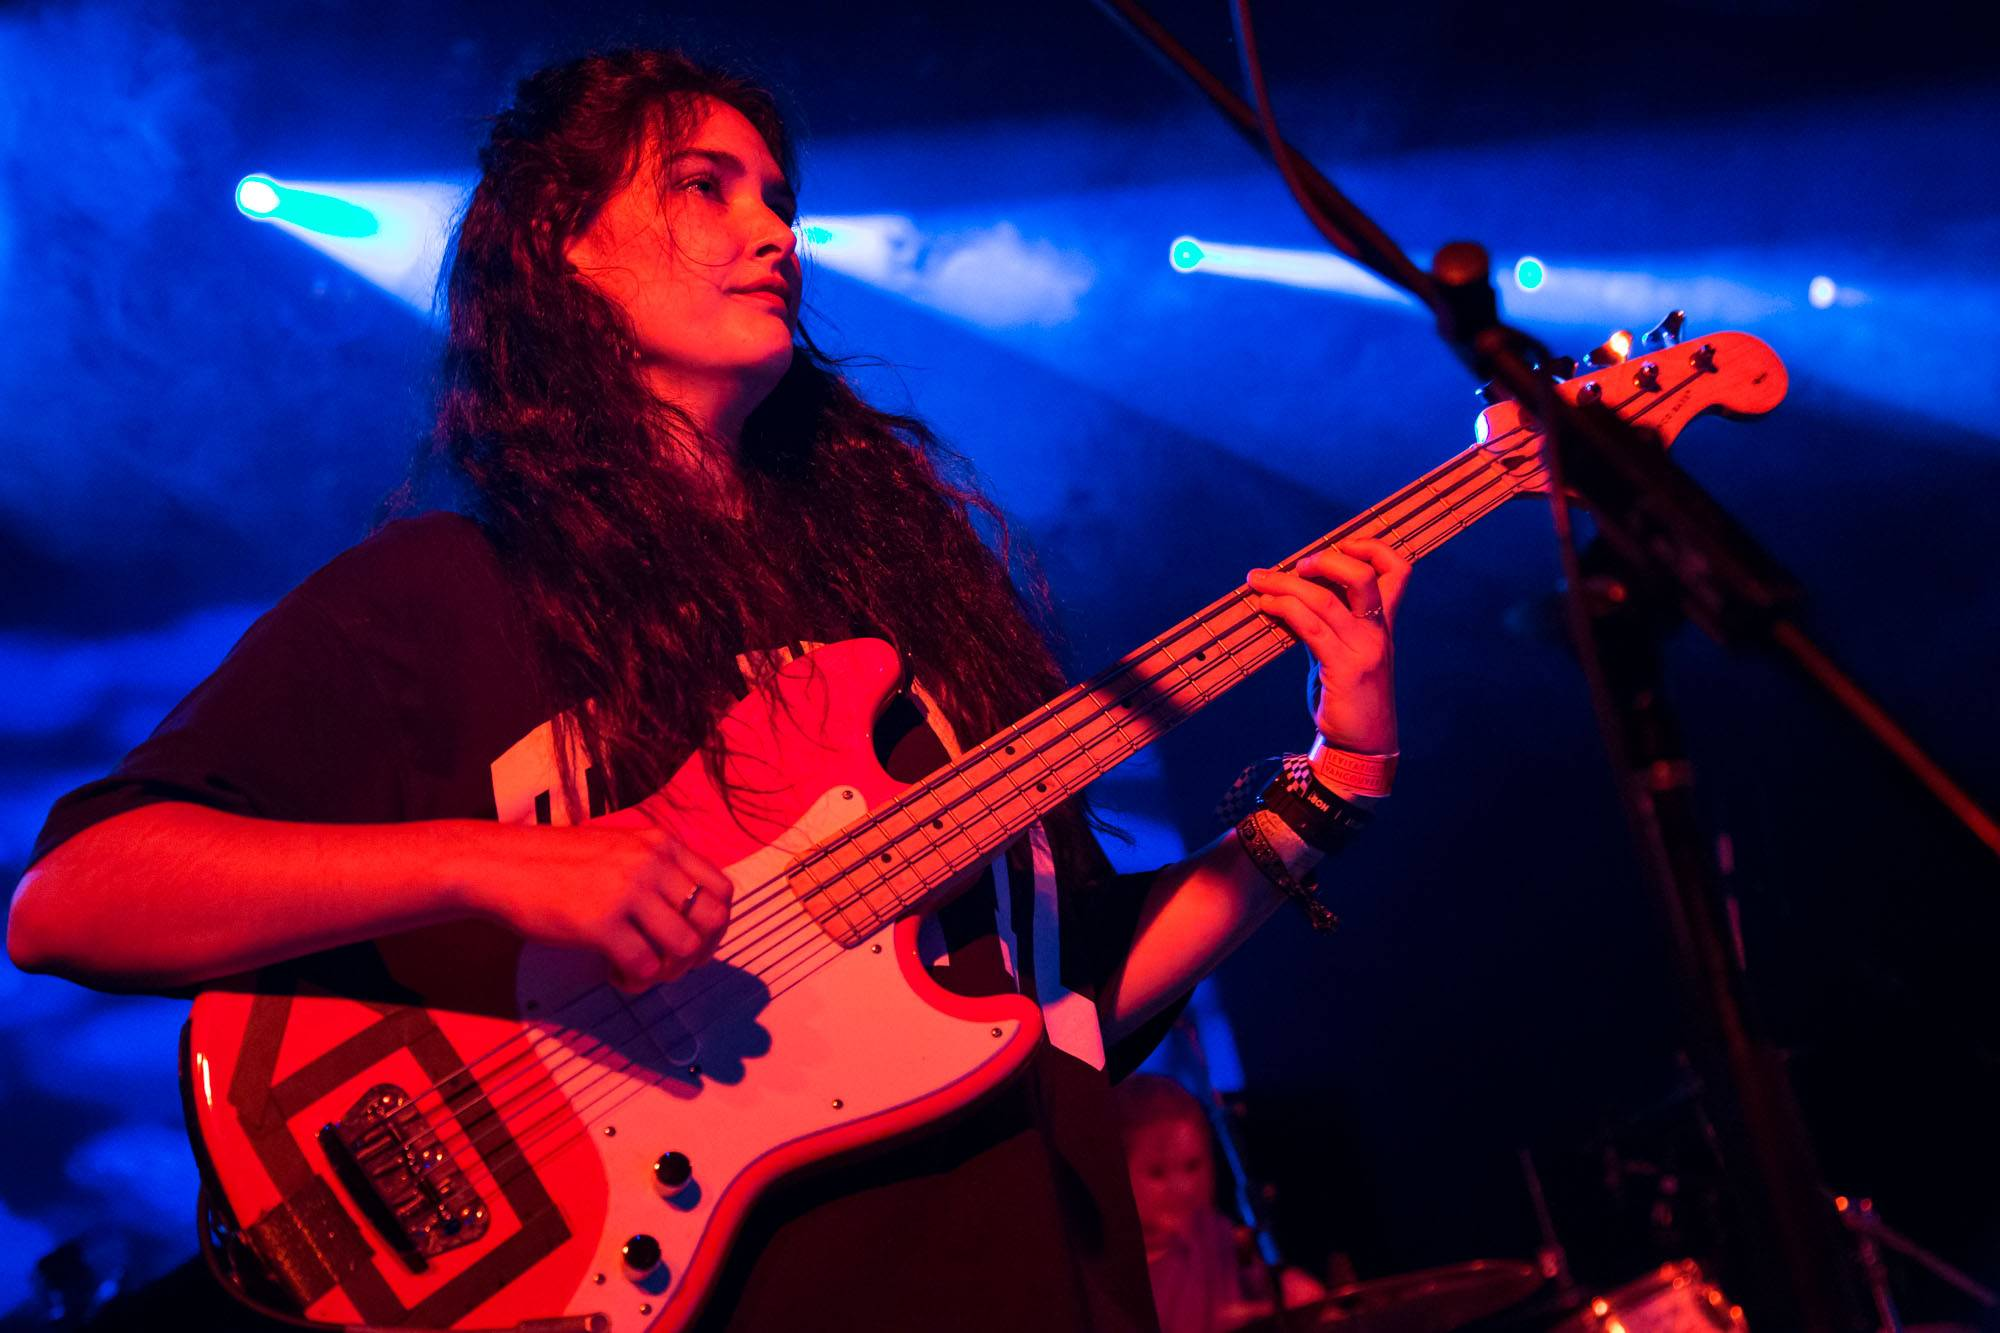 Hinds at the Commodore Ballroom, Vancouver, June 18 2016. Kirk Chantraine photo.